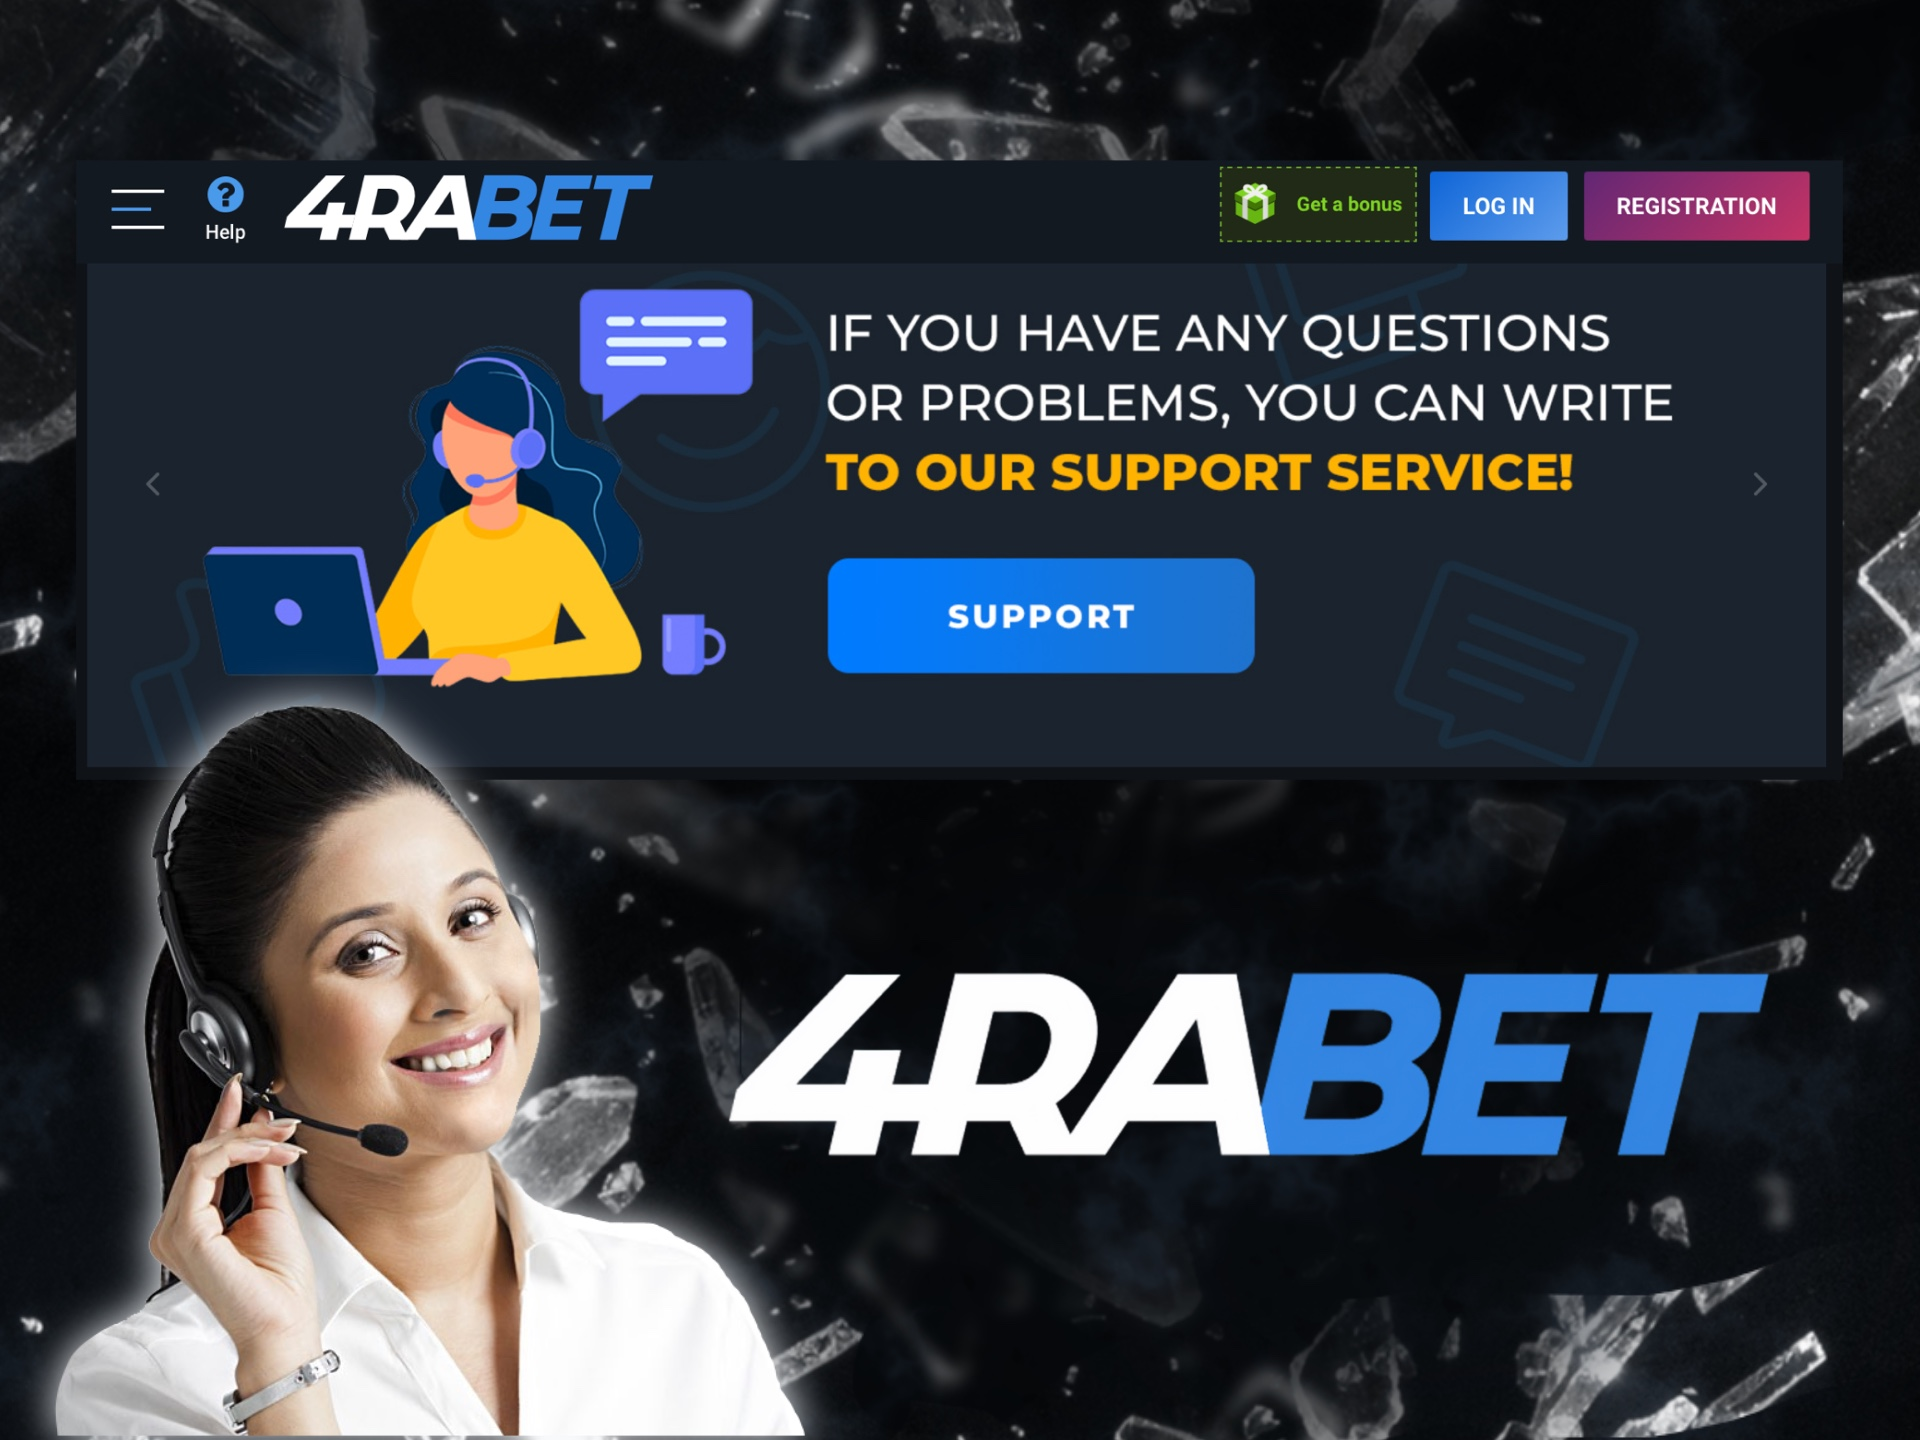 You can cotact 4rabet's support team whenever you have a question.